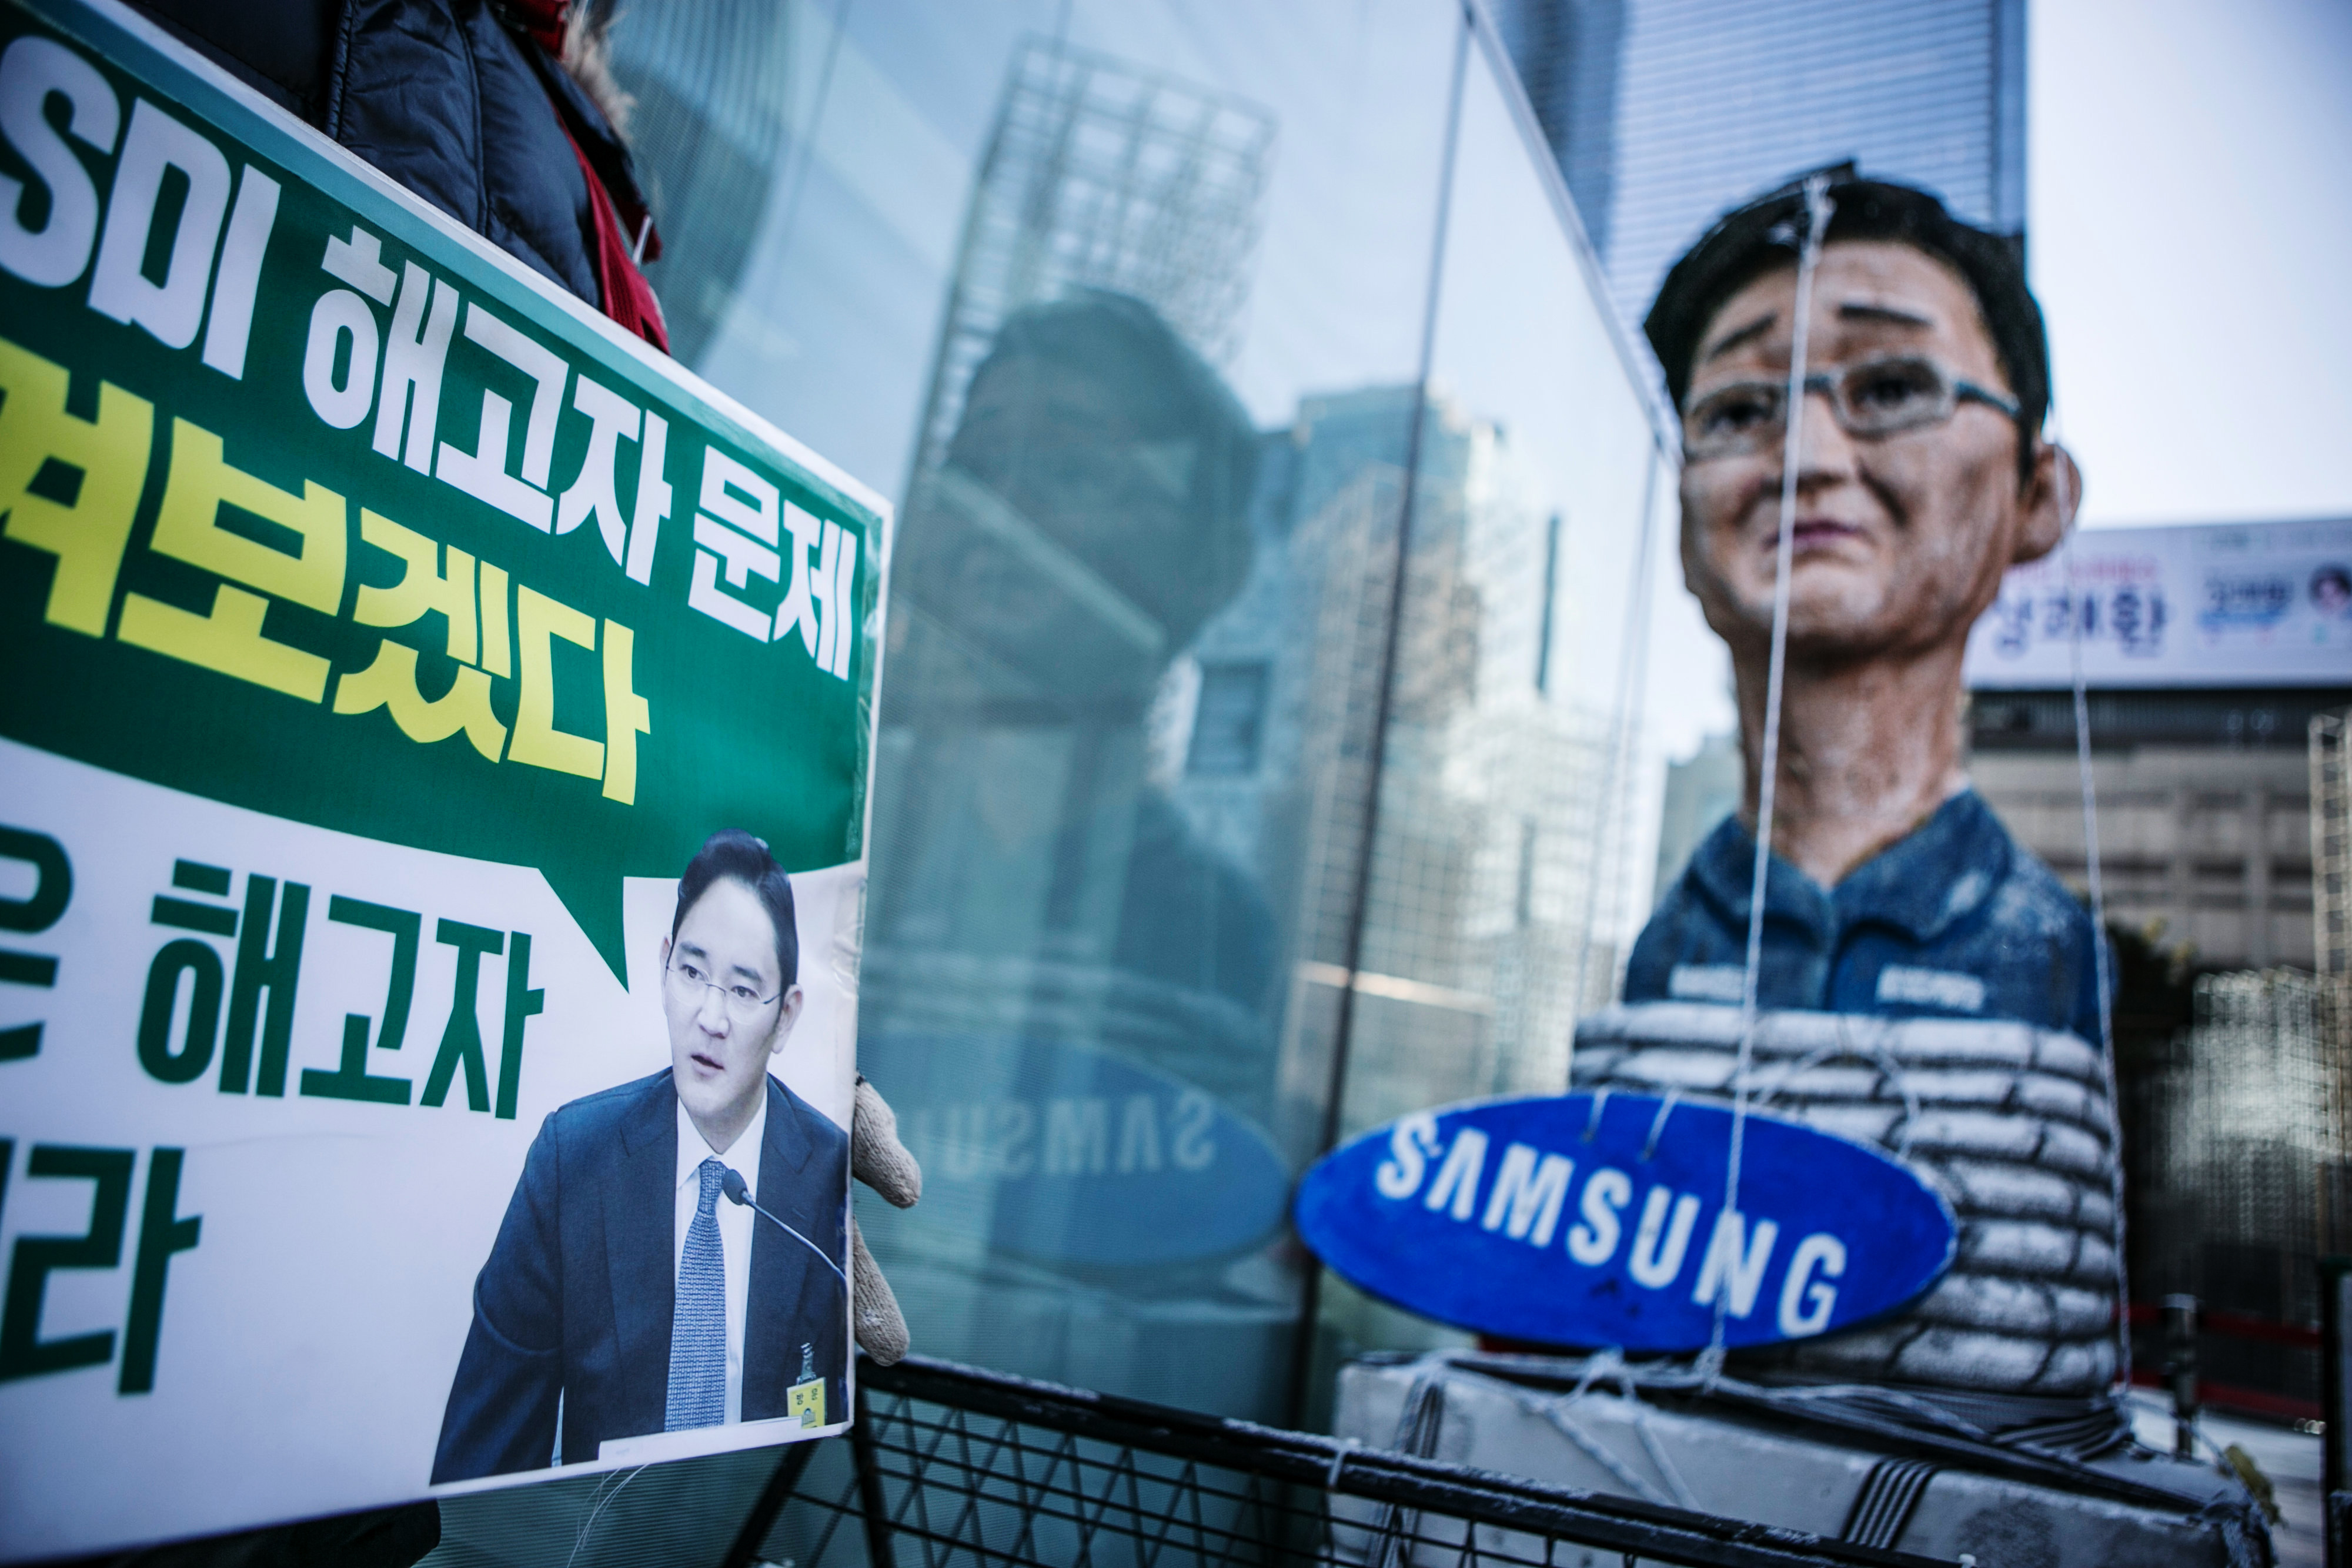 Views Of A Samsung Electronics Co. Building As Company's Vice Chairman Questioned in Korea Bribery Probe